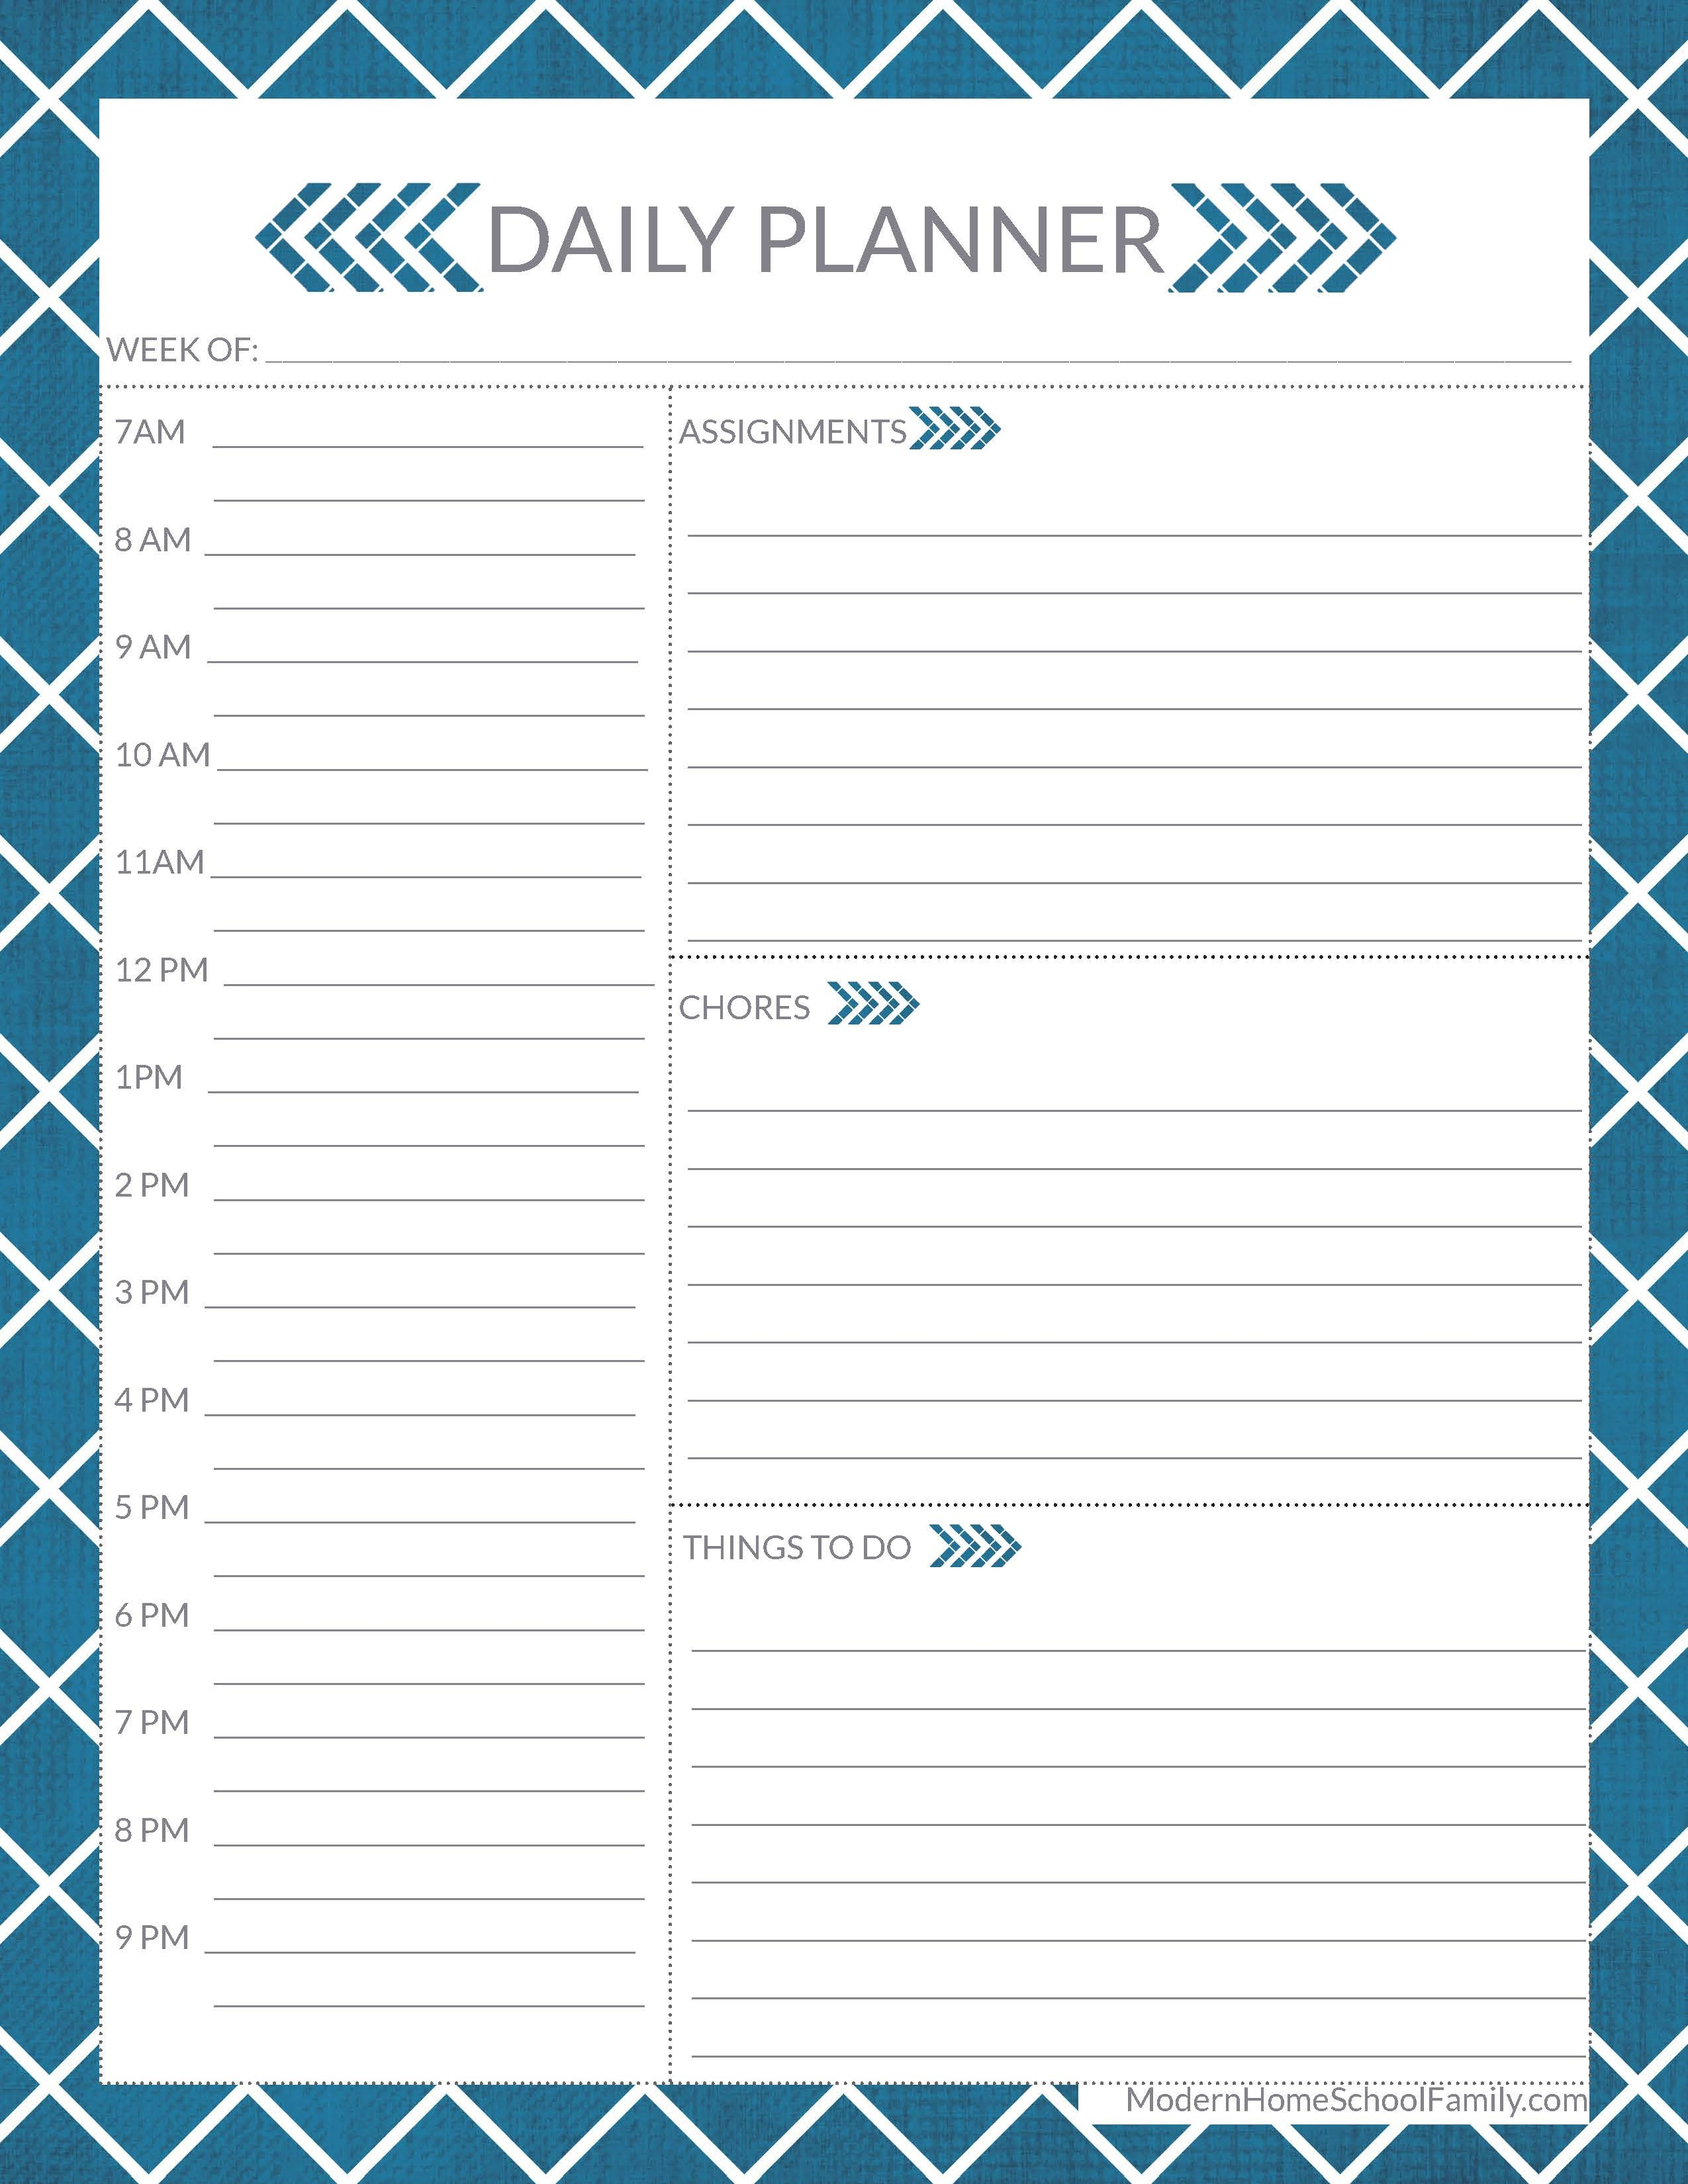 Free Homeschool Planner For High School Page - Modern Homeschool Family - Free Printable Worksheets For Highschool Students